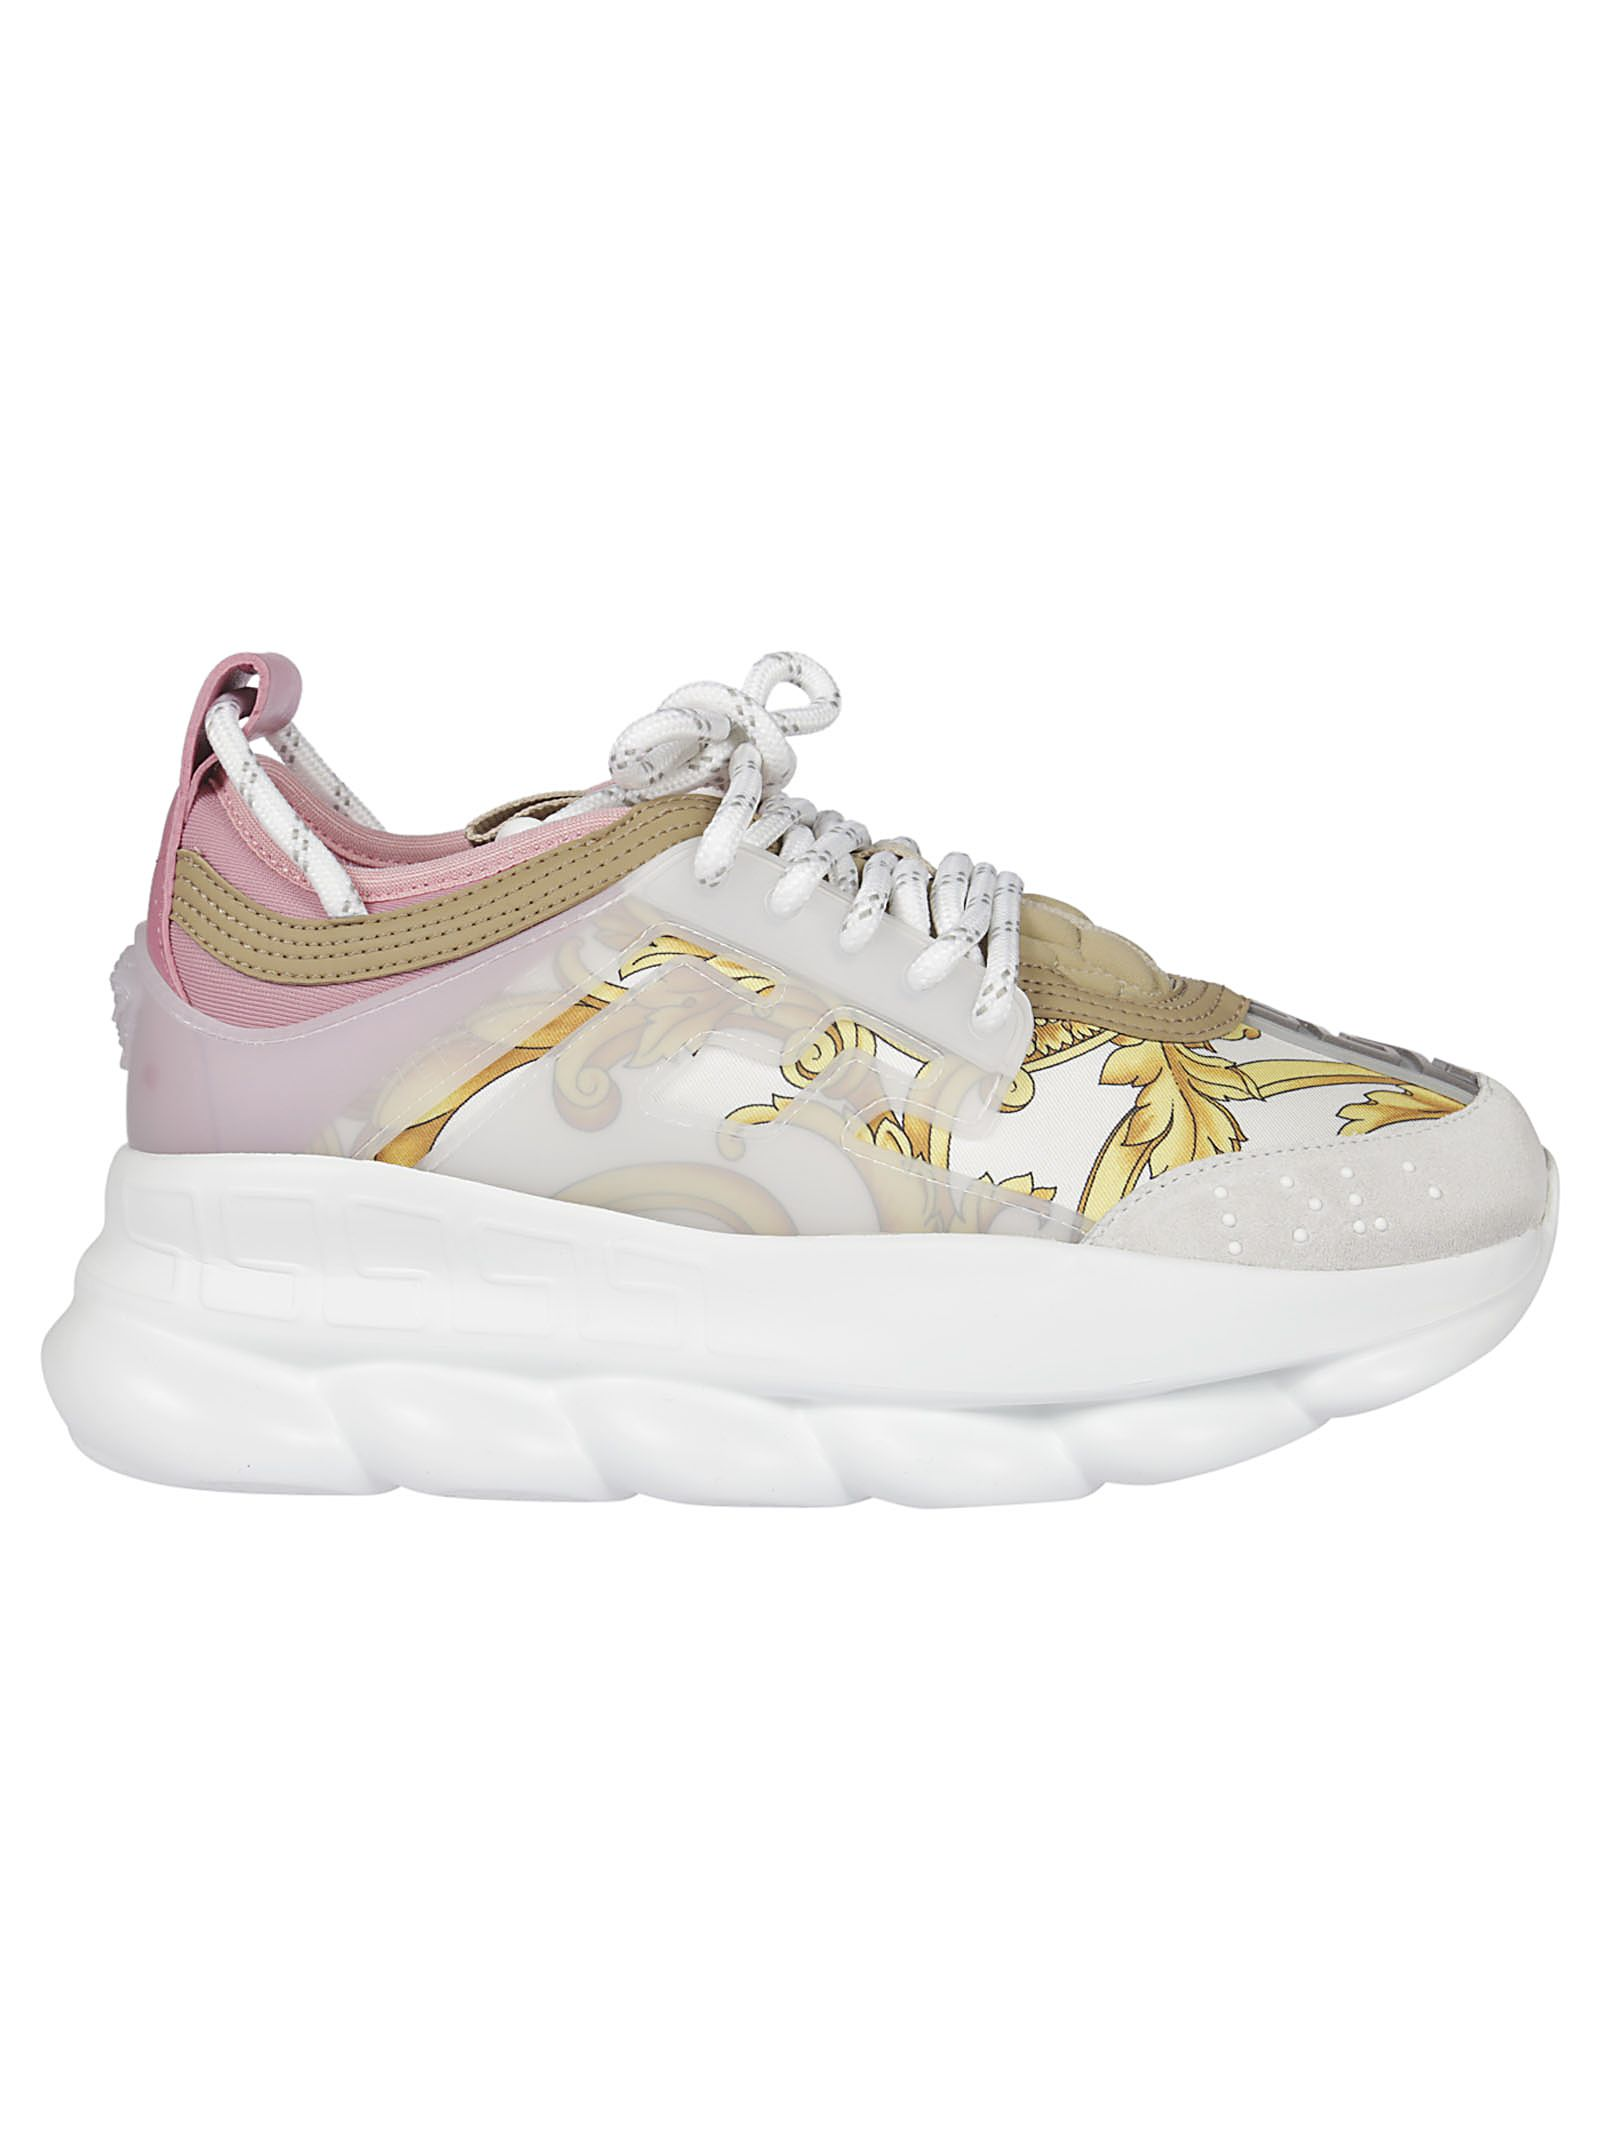 d3347ea6d9d Versace Versace Chain Reaction Baroque Print Sneakers - white ...